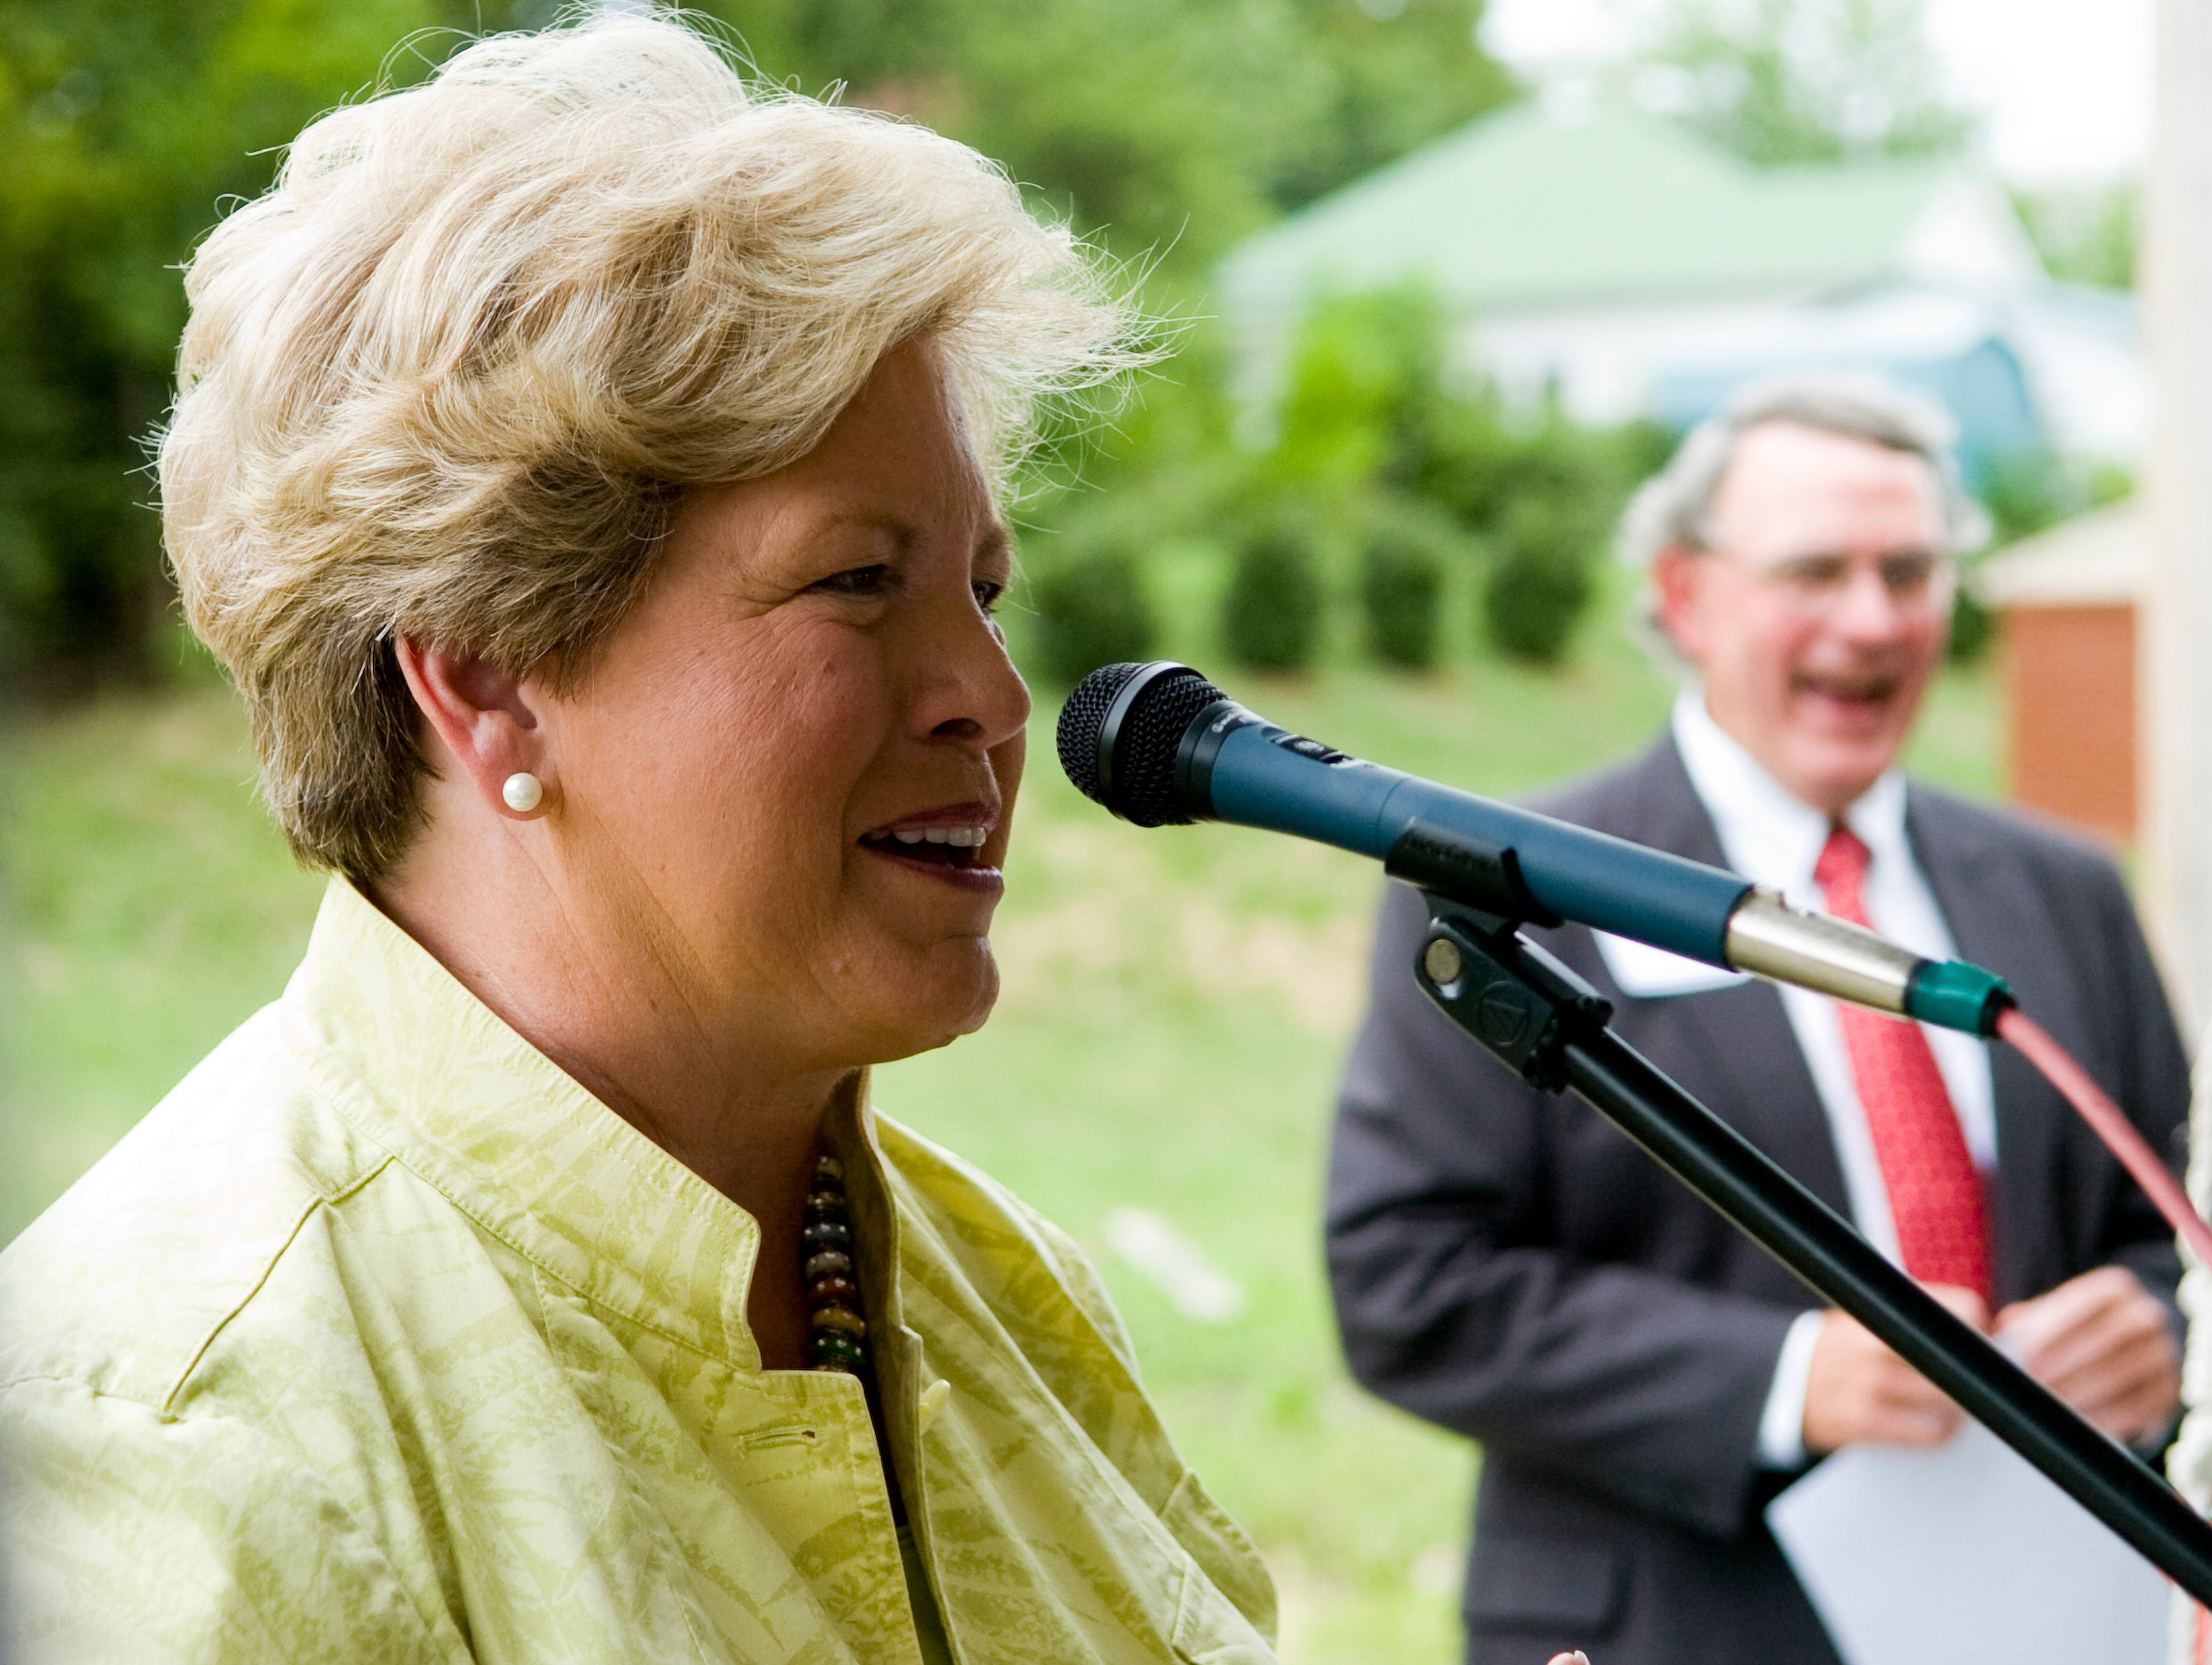 University of Tennessee women's athletic director, Joan Cronan speaks on behalf of the Helen Ross McNabb Center during a ceremony a the future location of the Maryville Helen Ross McNabb Center on Monday, July 26, 2010.